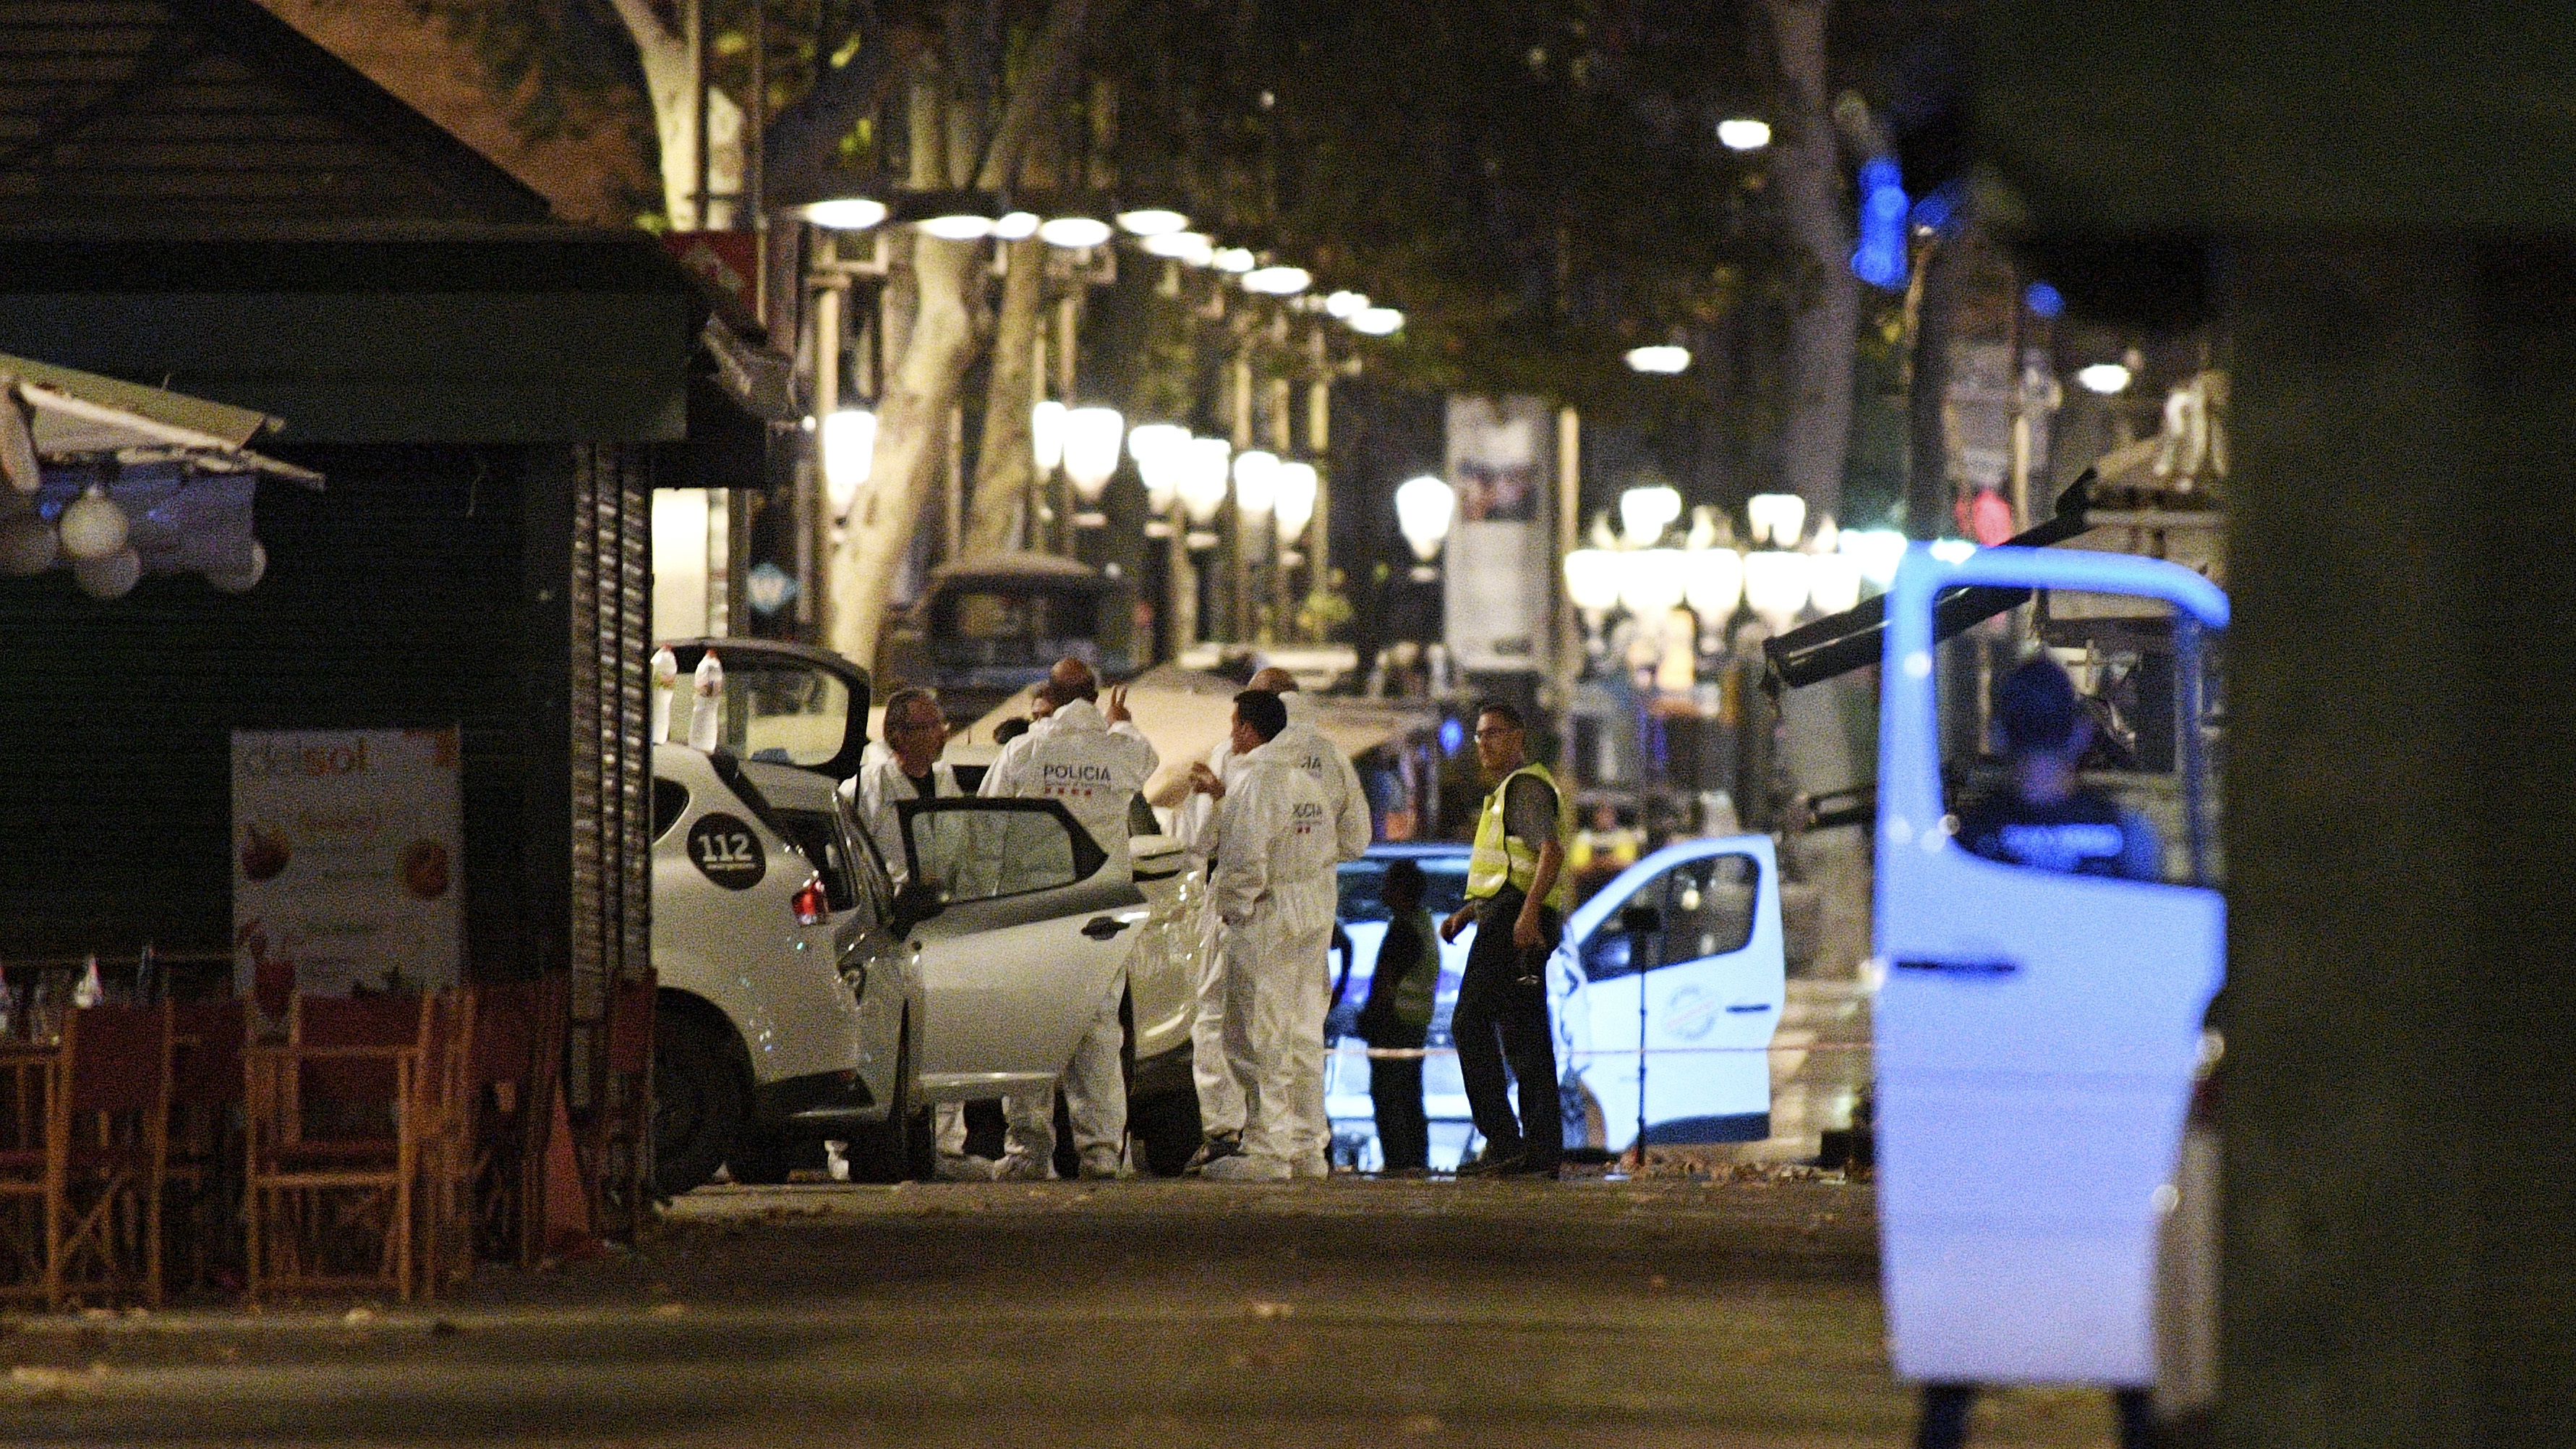 As night falls in Barcelona, Spain, police officers and forensics experts continue to investigate Thursday afternoon's deadly van attack on the popular pedestrian boulevard Las Ramblas. (David Ramos/Getty Images)